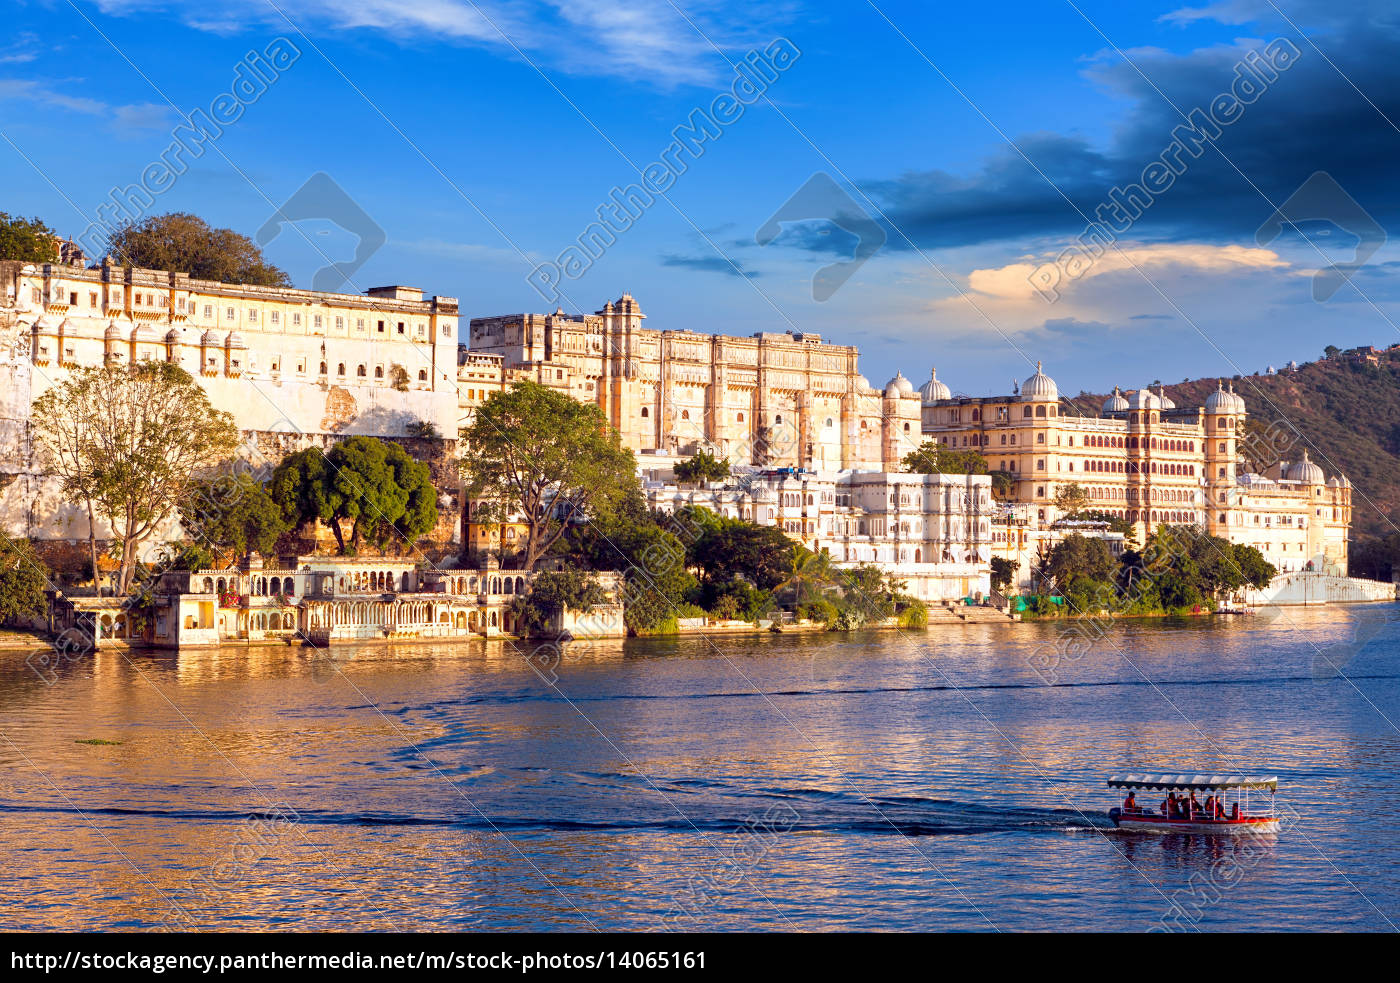 city, palace, , pichola, lake, , udaipur, , rajasthan, - 14065161